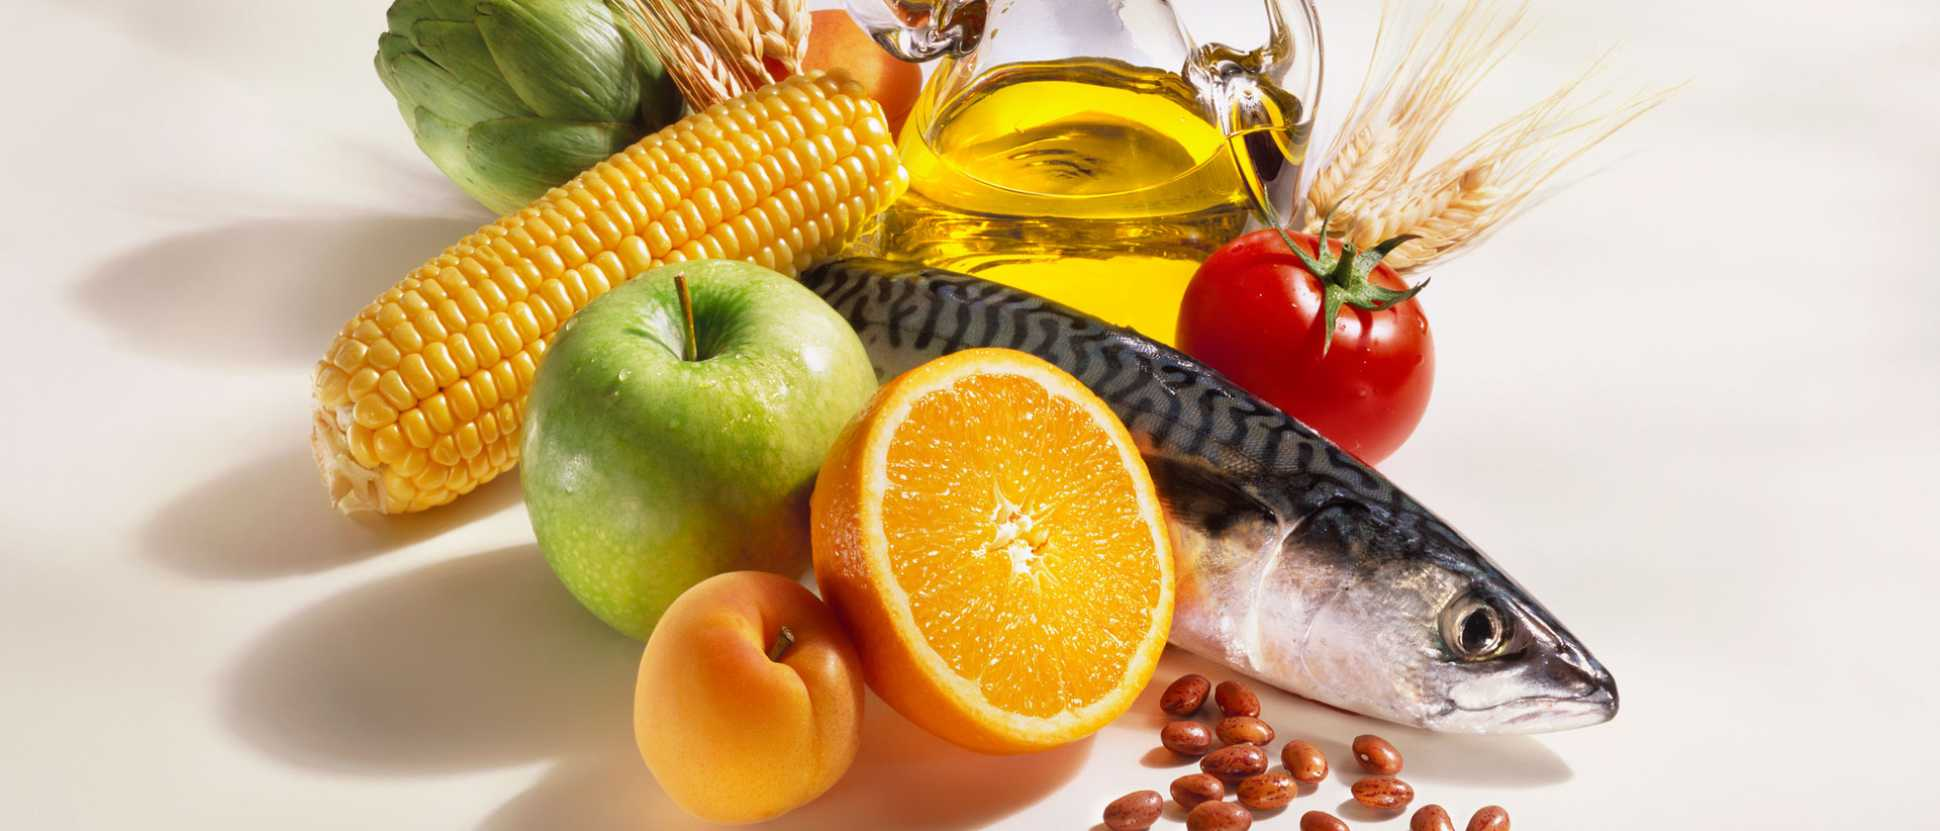 161027-Fruit-rich-Mediterranean-Diet-may-lead-to-a-reduction-in-age-related-macular-degenerationjpg